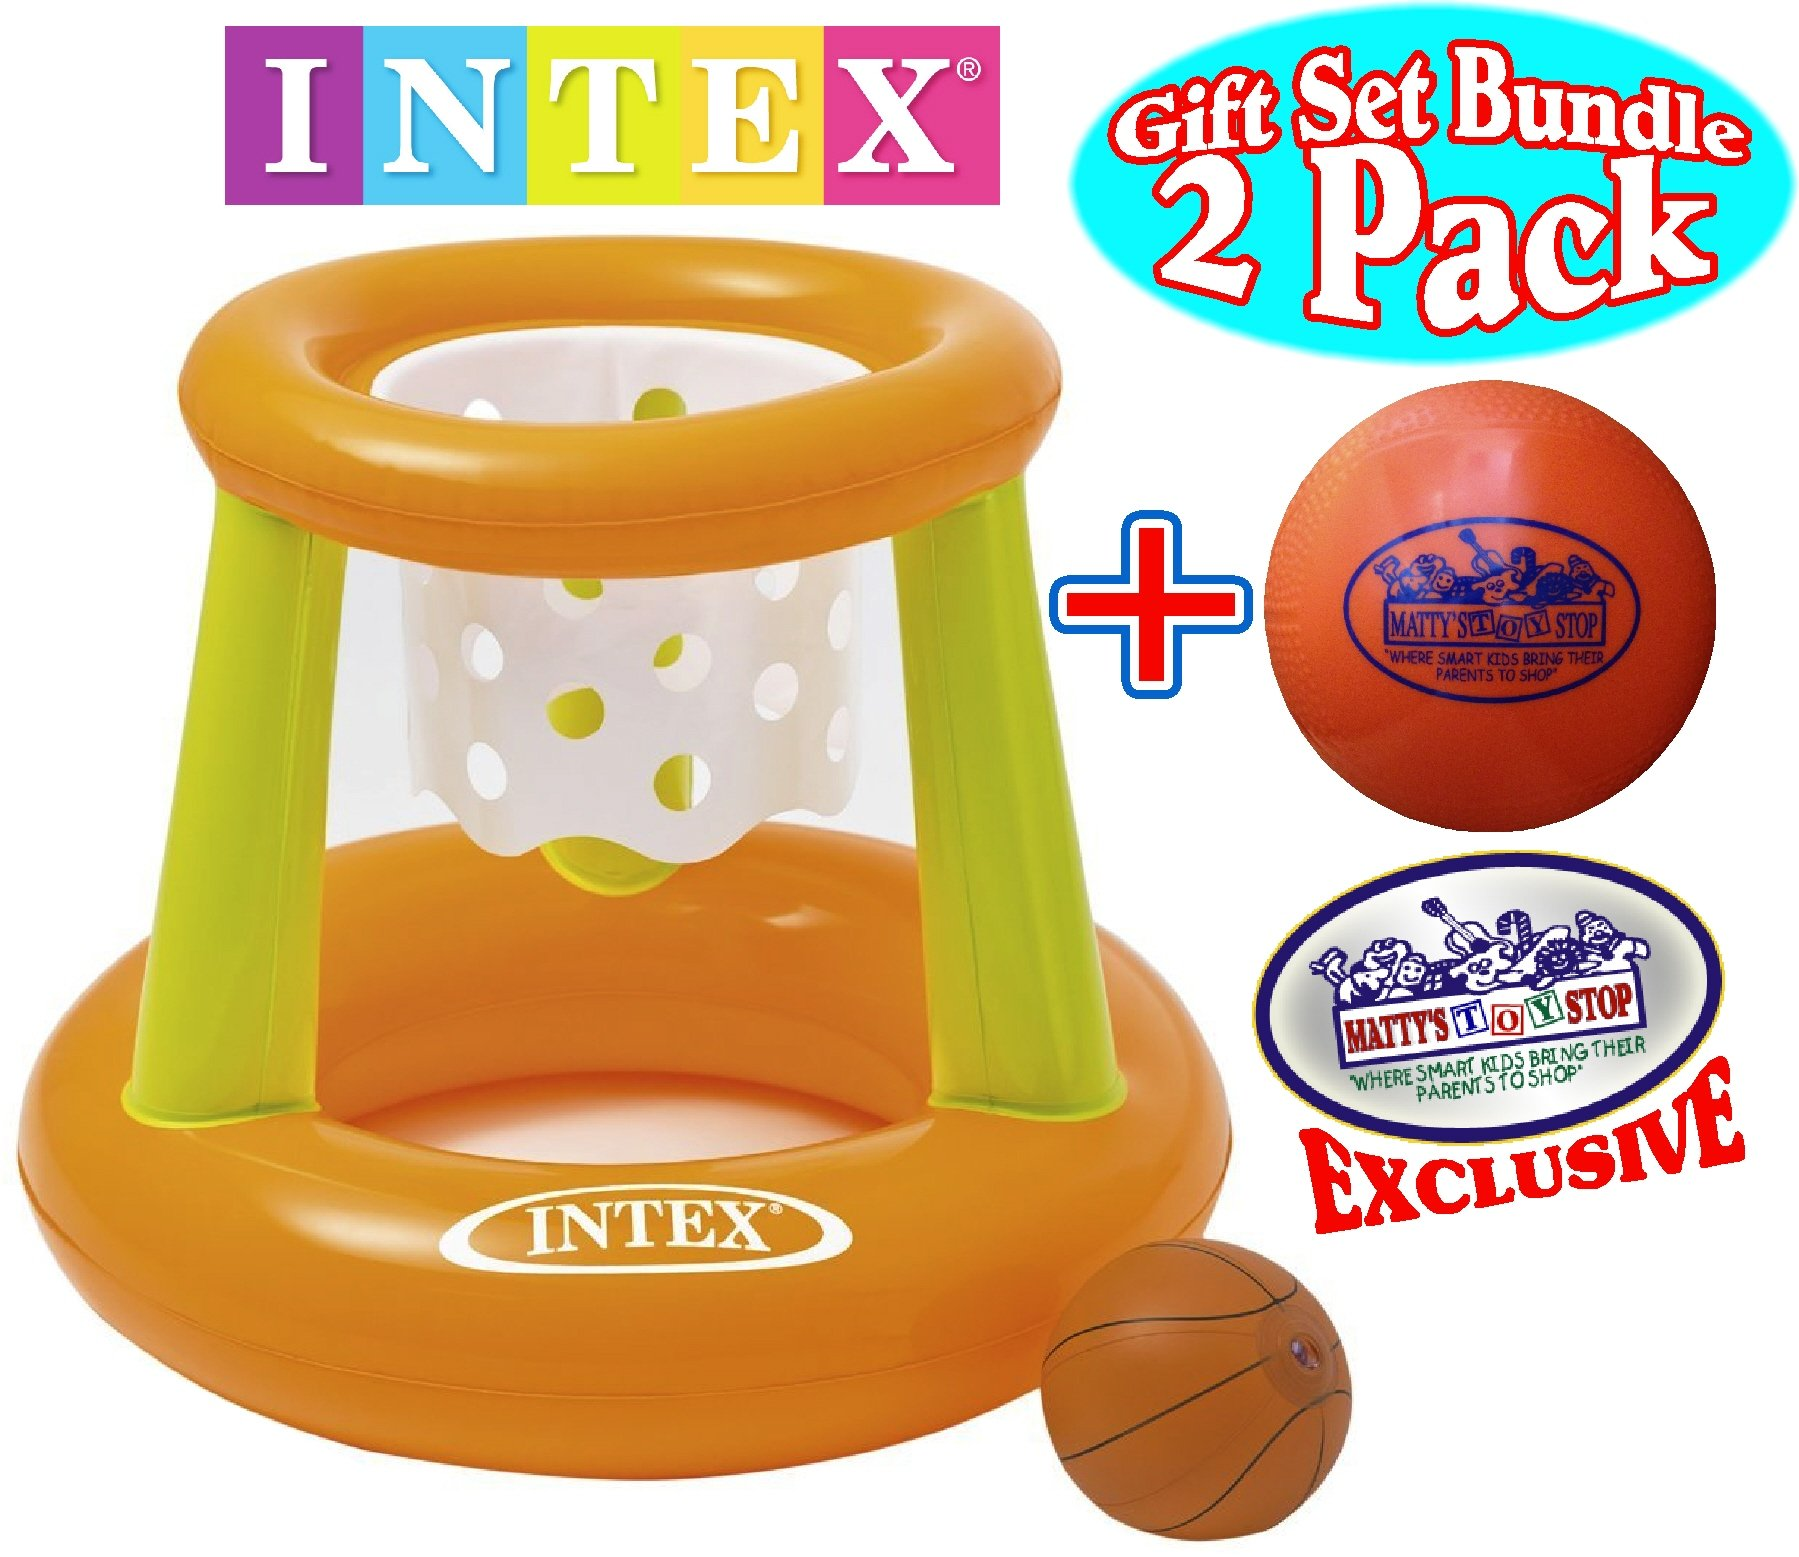 Intex Floating Hoops Basketball Game with Exclusive ''Matty's Toy Stop'' 4.25'' Vinyl Basketball Gift Set Bundle - 2 Pack